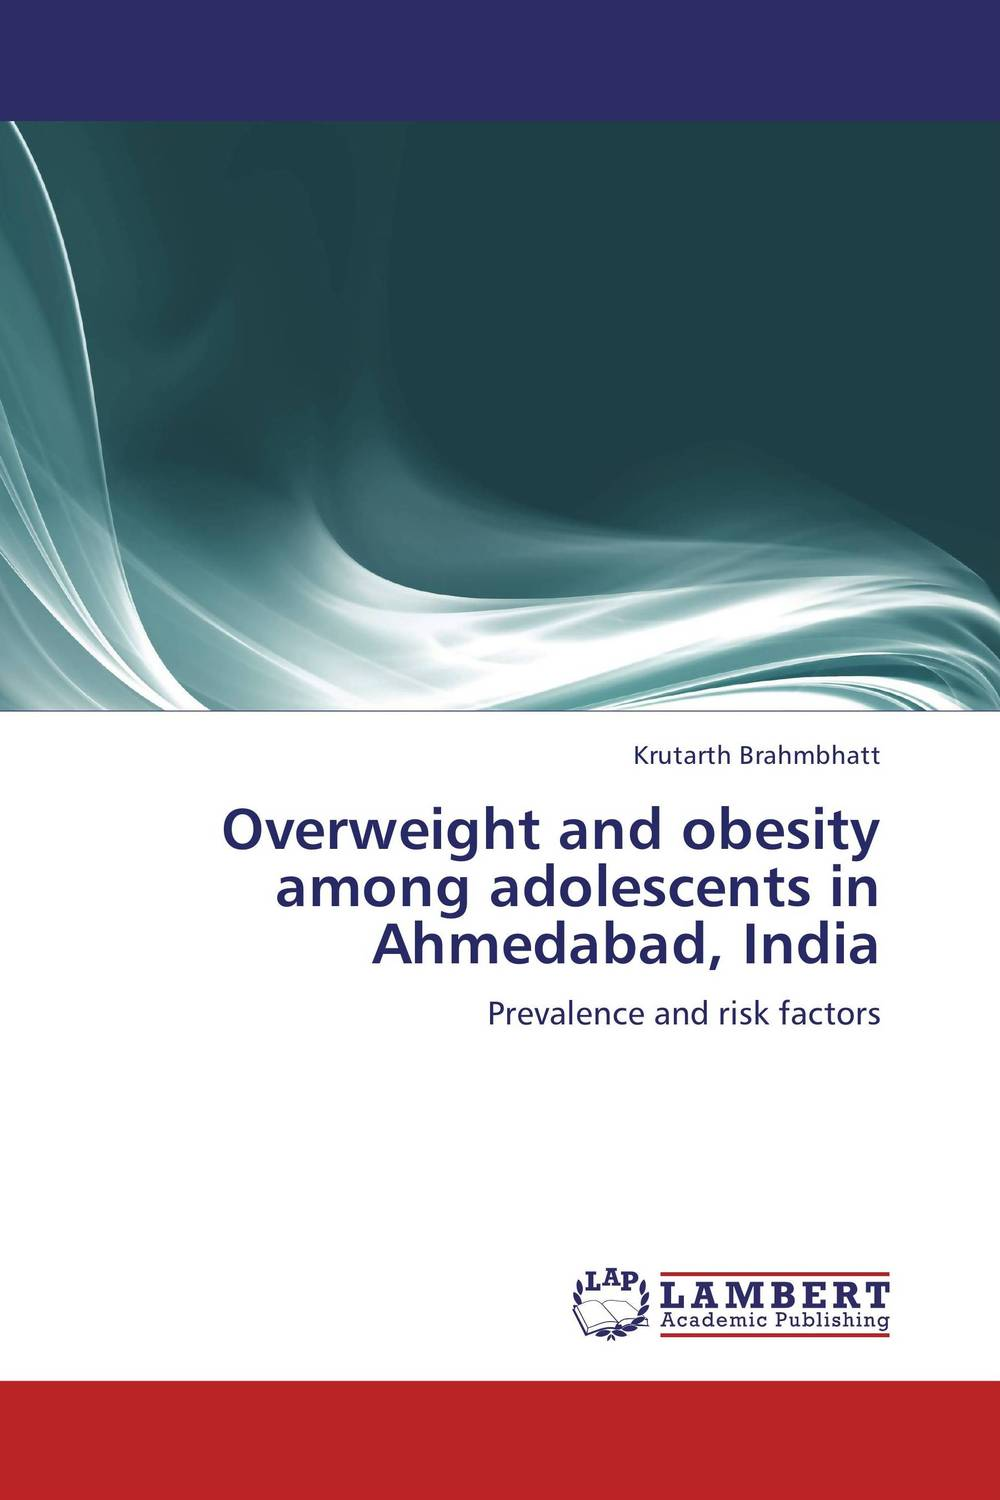 Overweight and obesity among adolescents in Ahmedabad, India developing networks in obesity using text mining